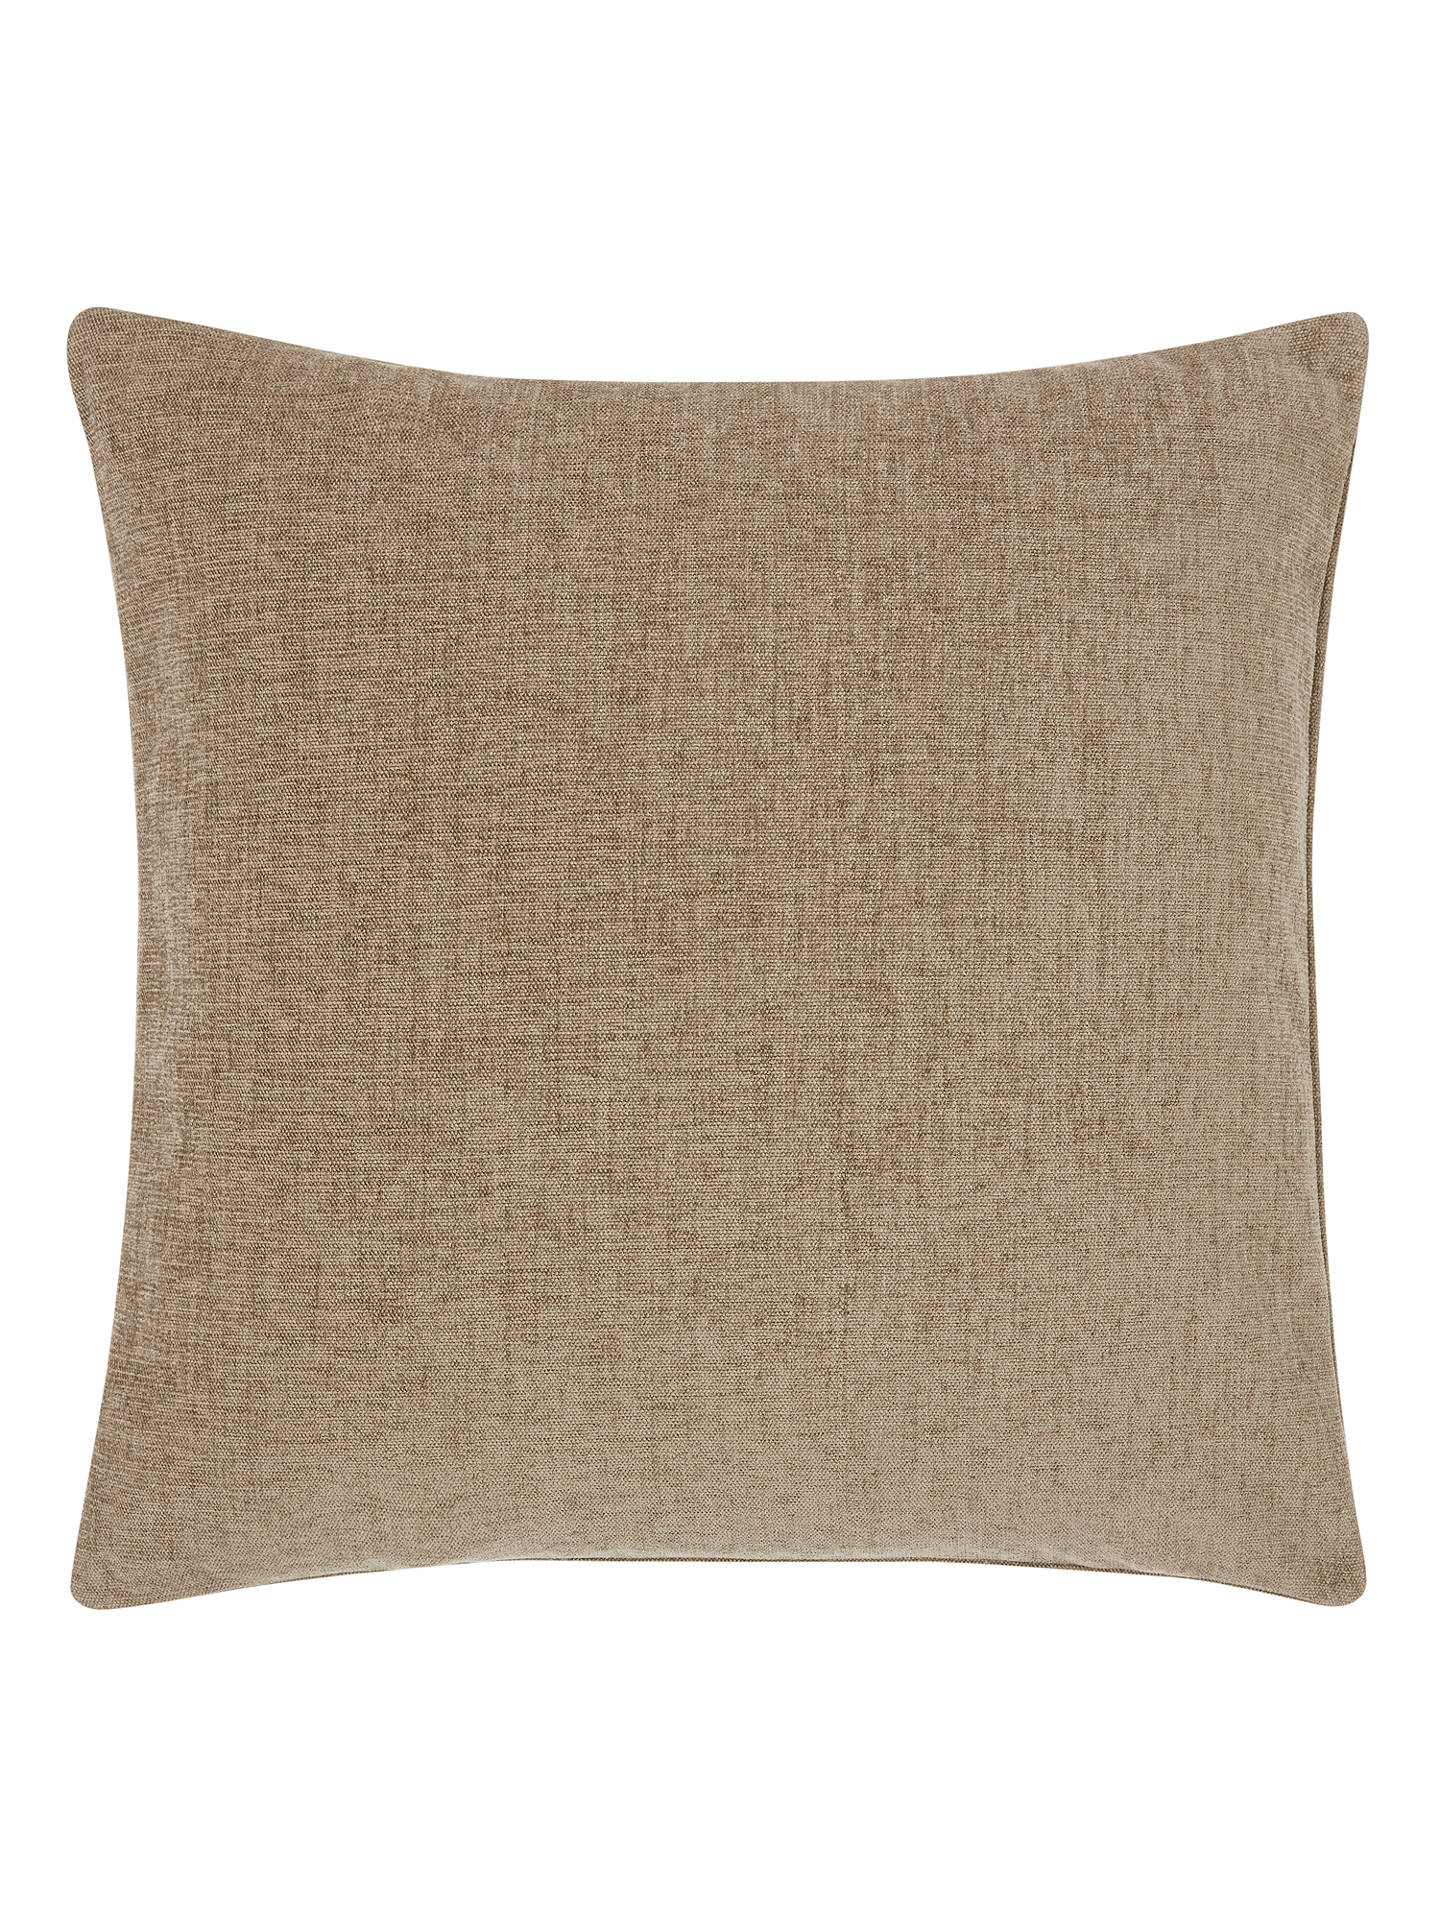 BuyJohn Lewis & Partners Chenille Cushion, Sable Online at johnlewis.com